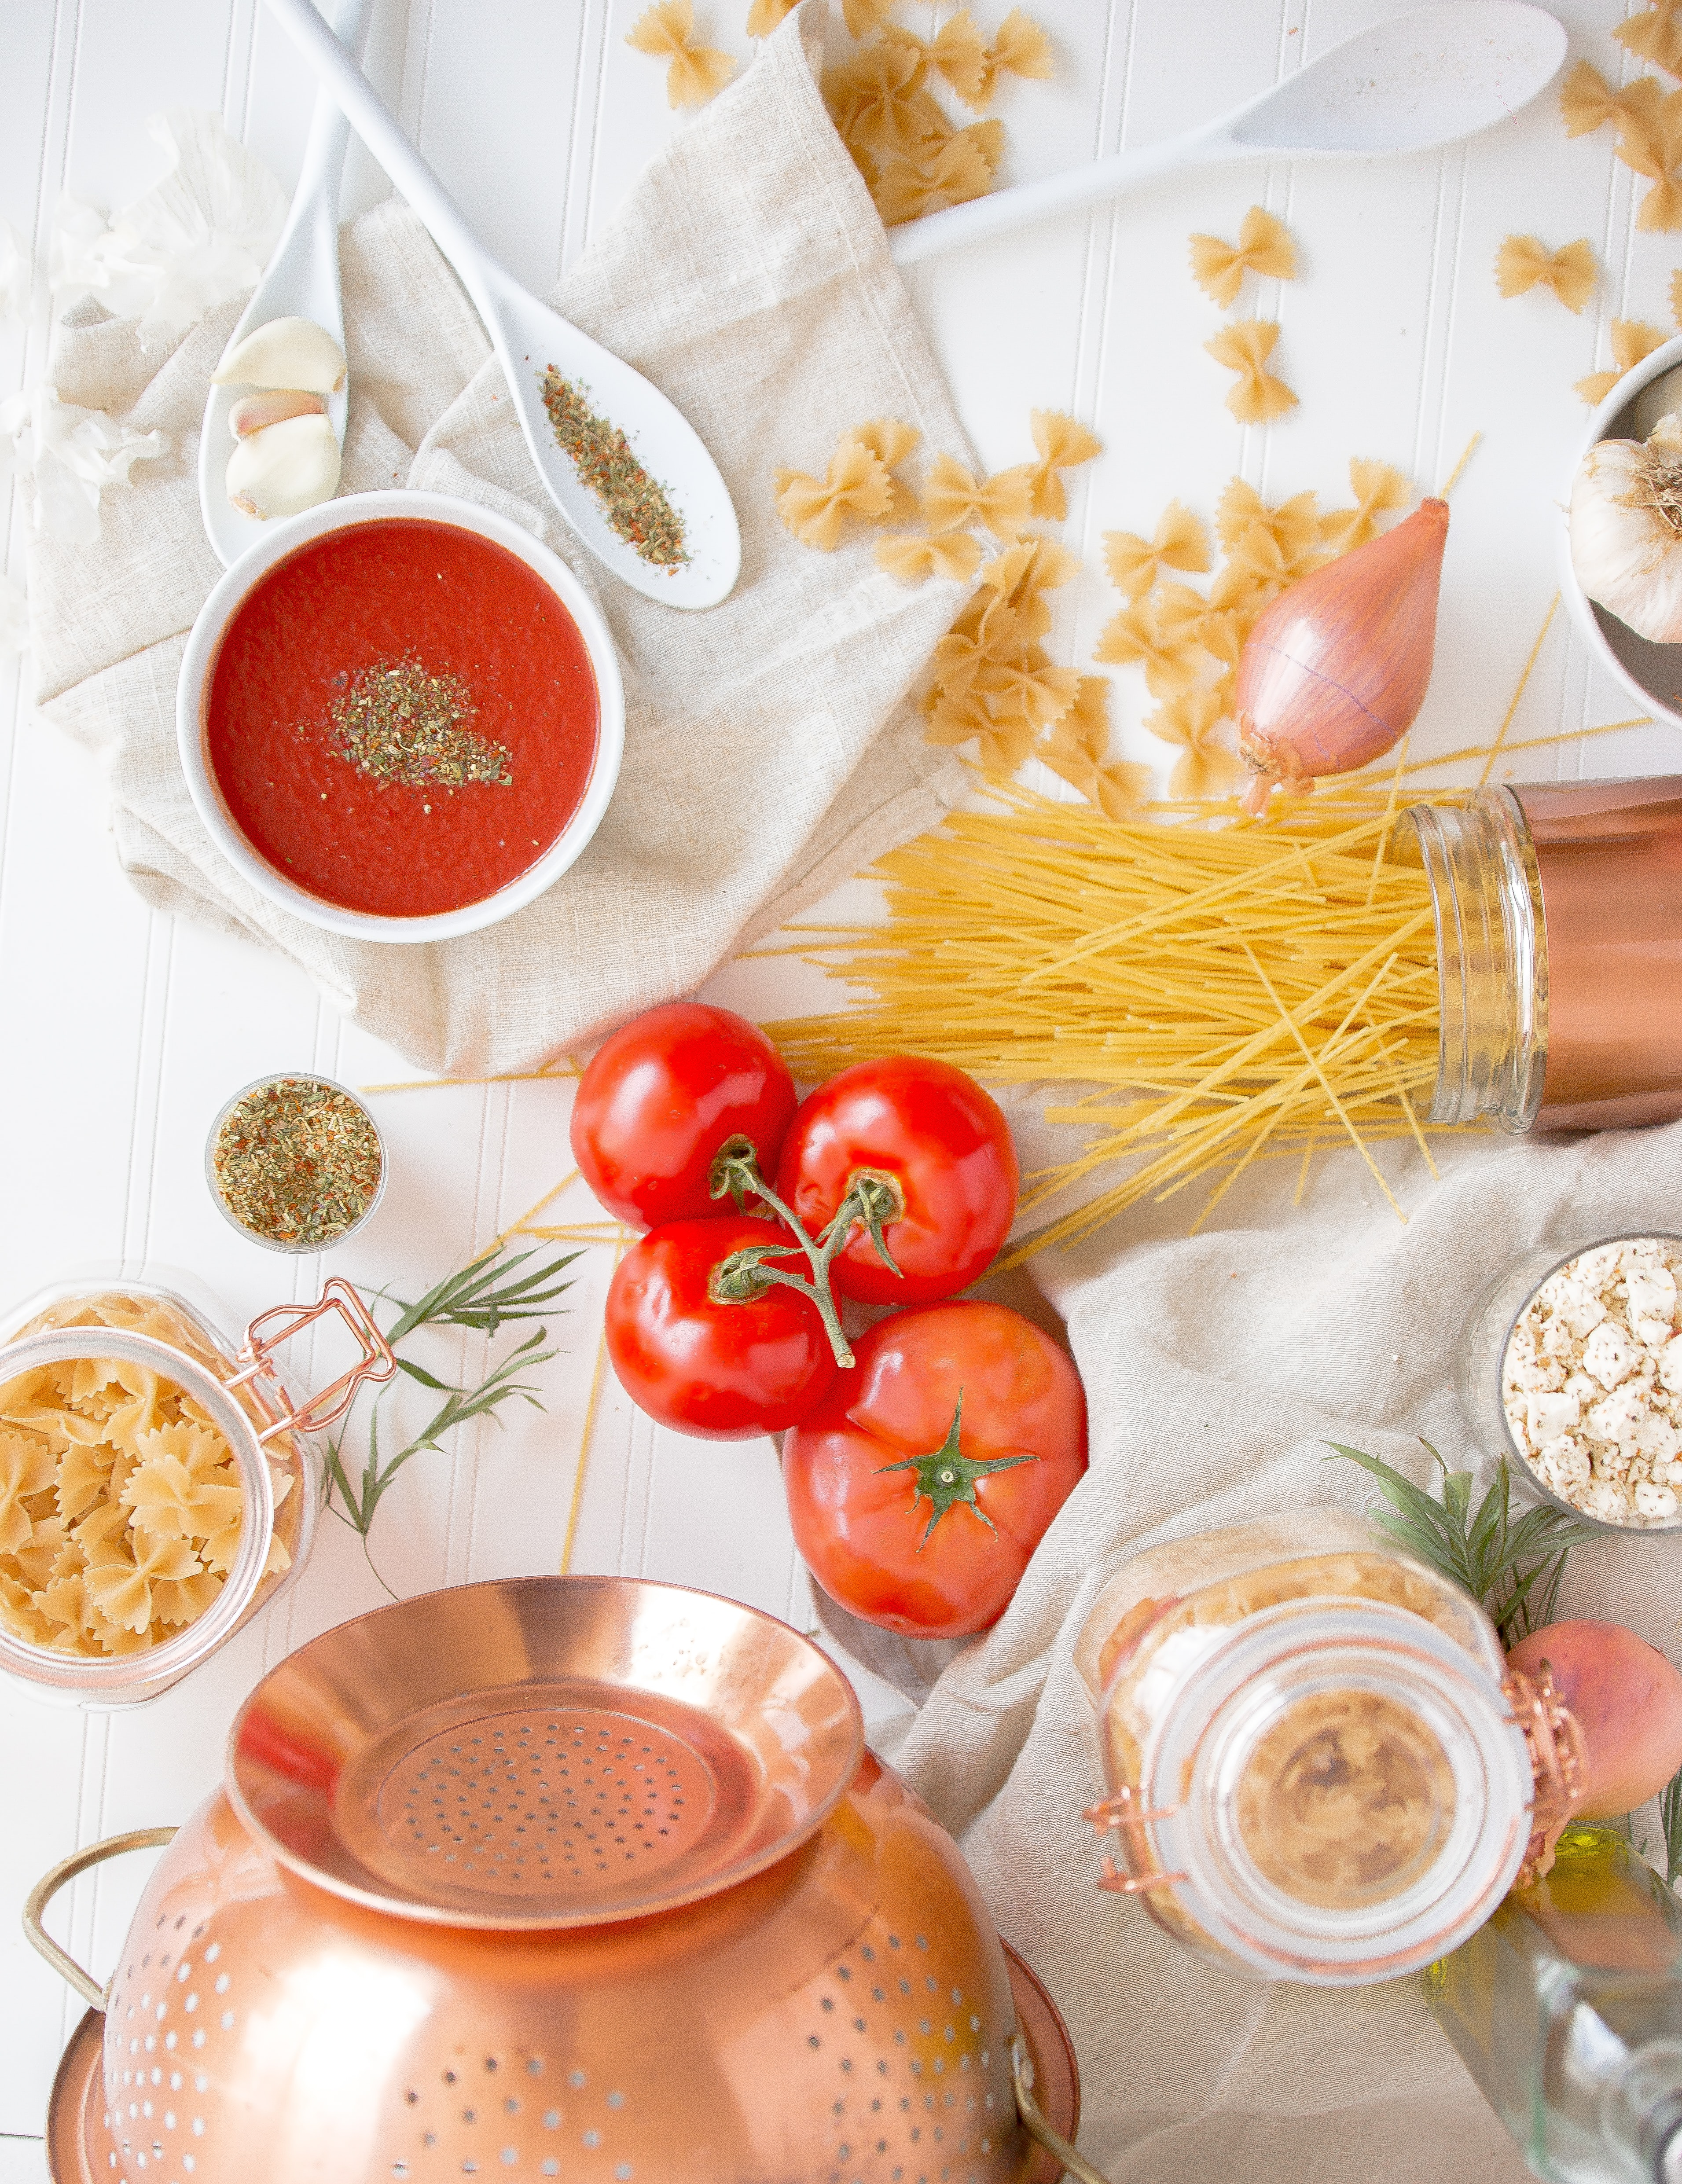 red tomato and pasta